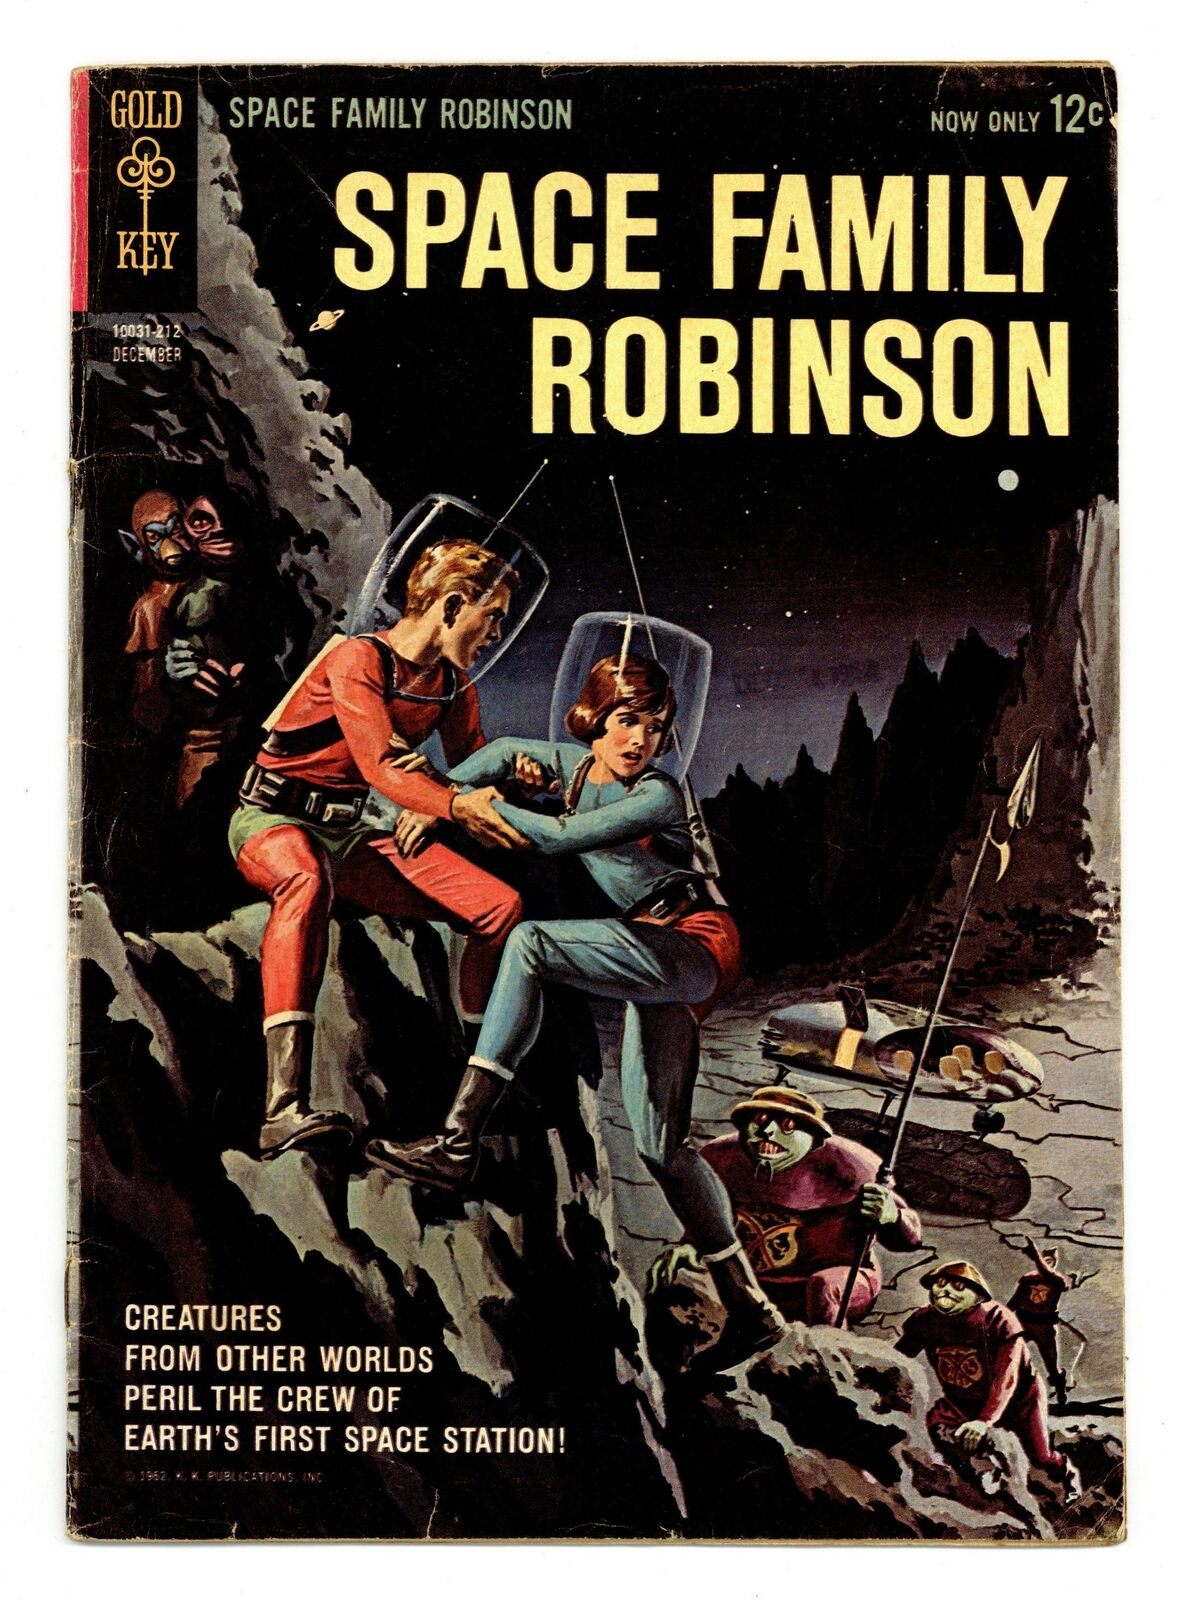 Episode 26 – Lost in Space 2 : Space Family Robinson